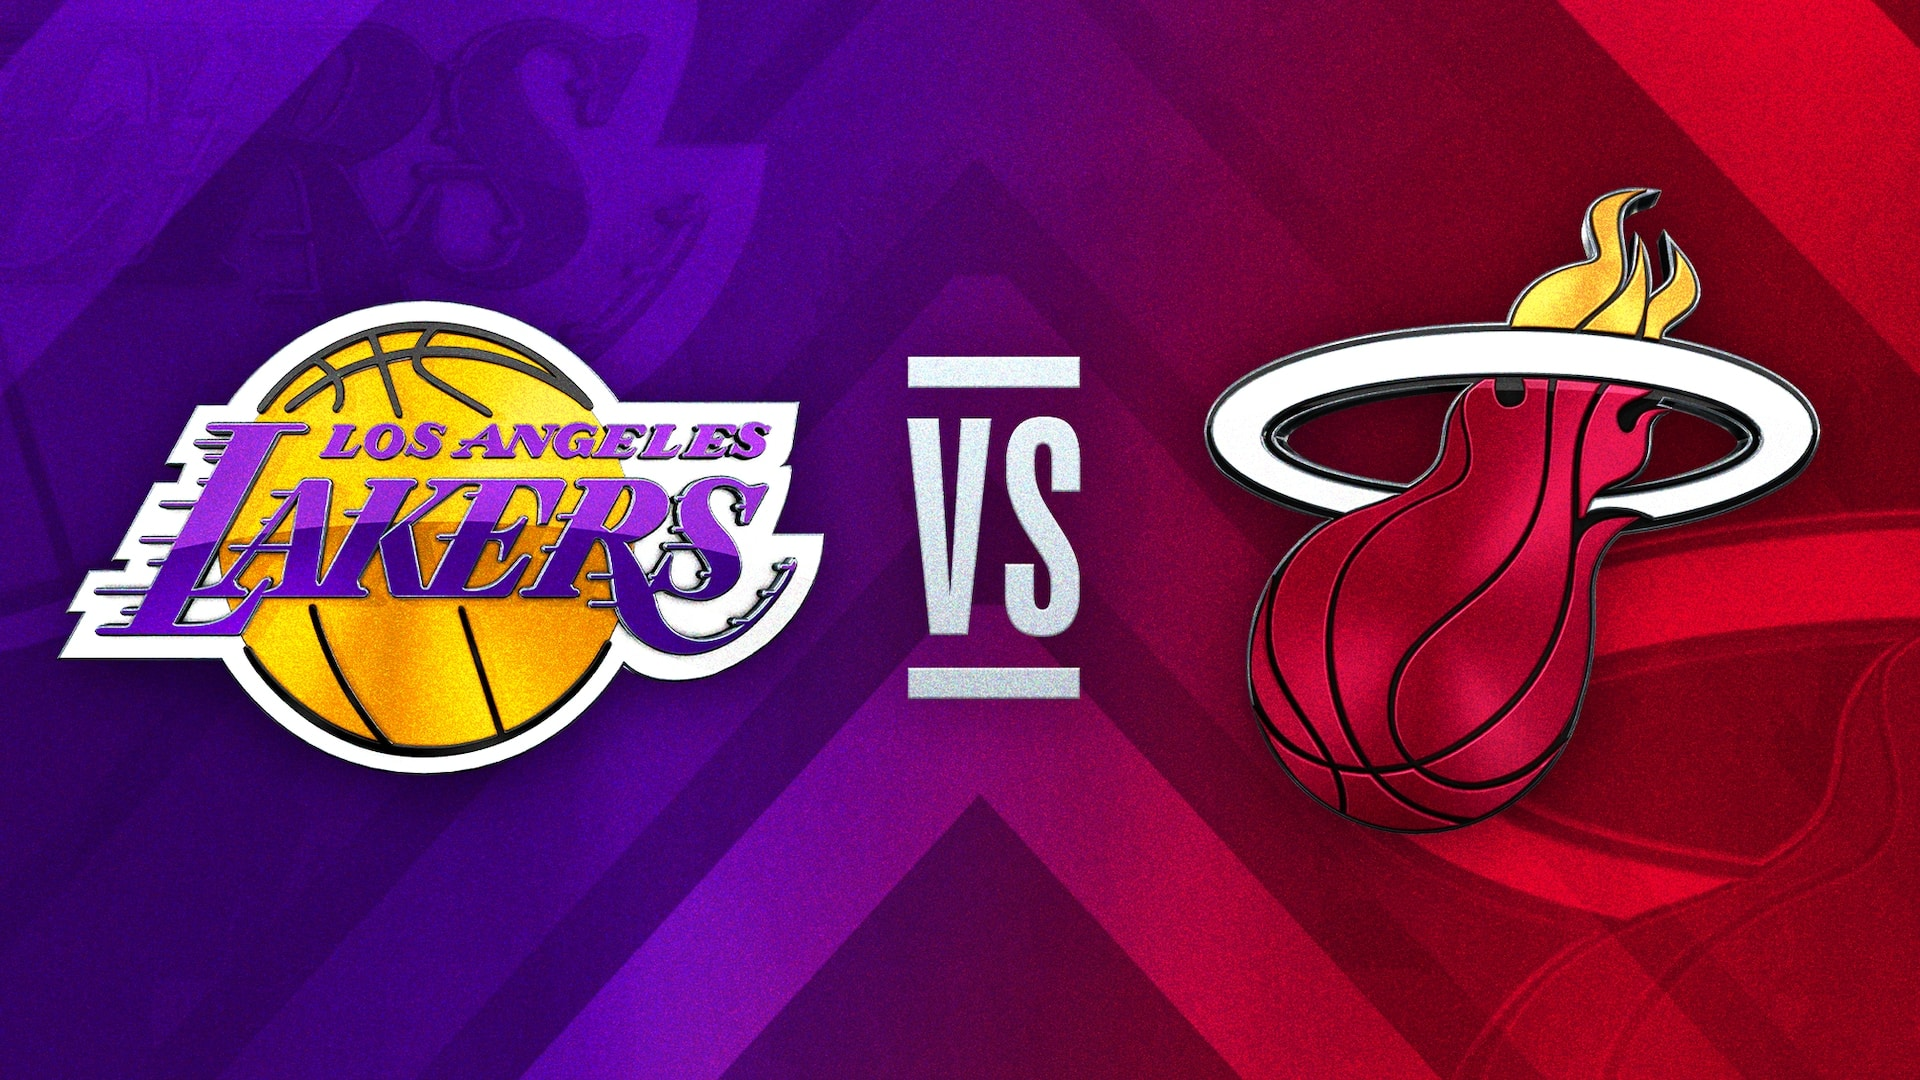 Miami Heat Vs Los Angeles Lakers Game 5 Pick Odds Prediction 10 9 20